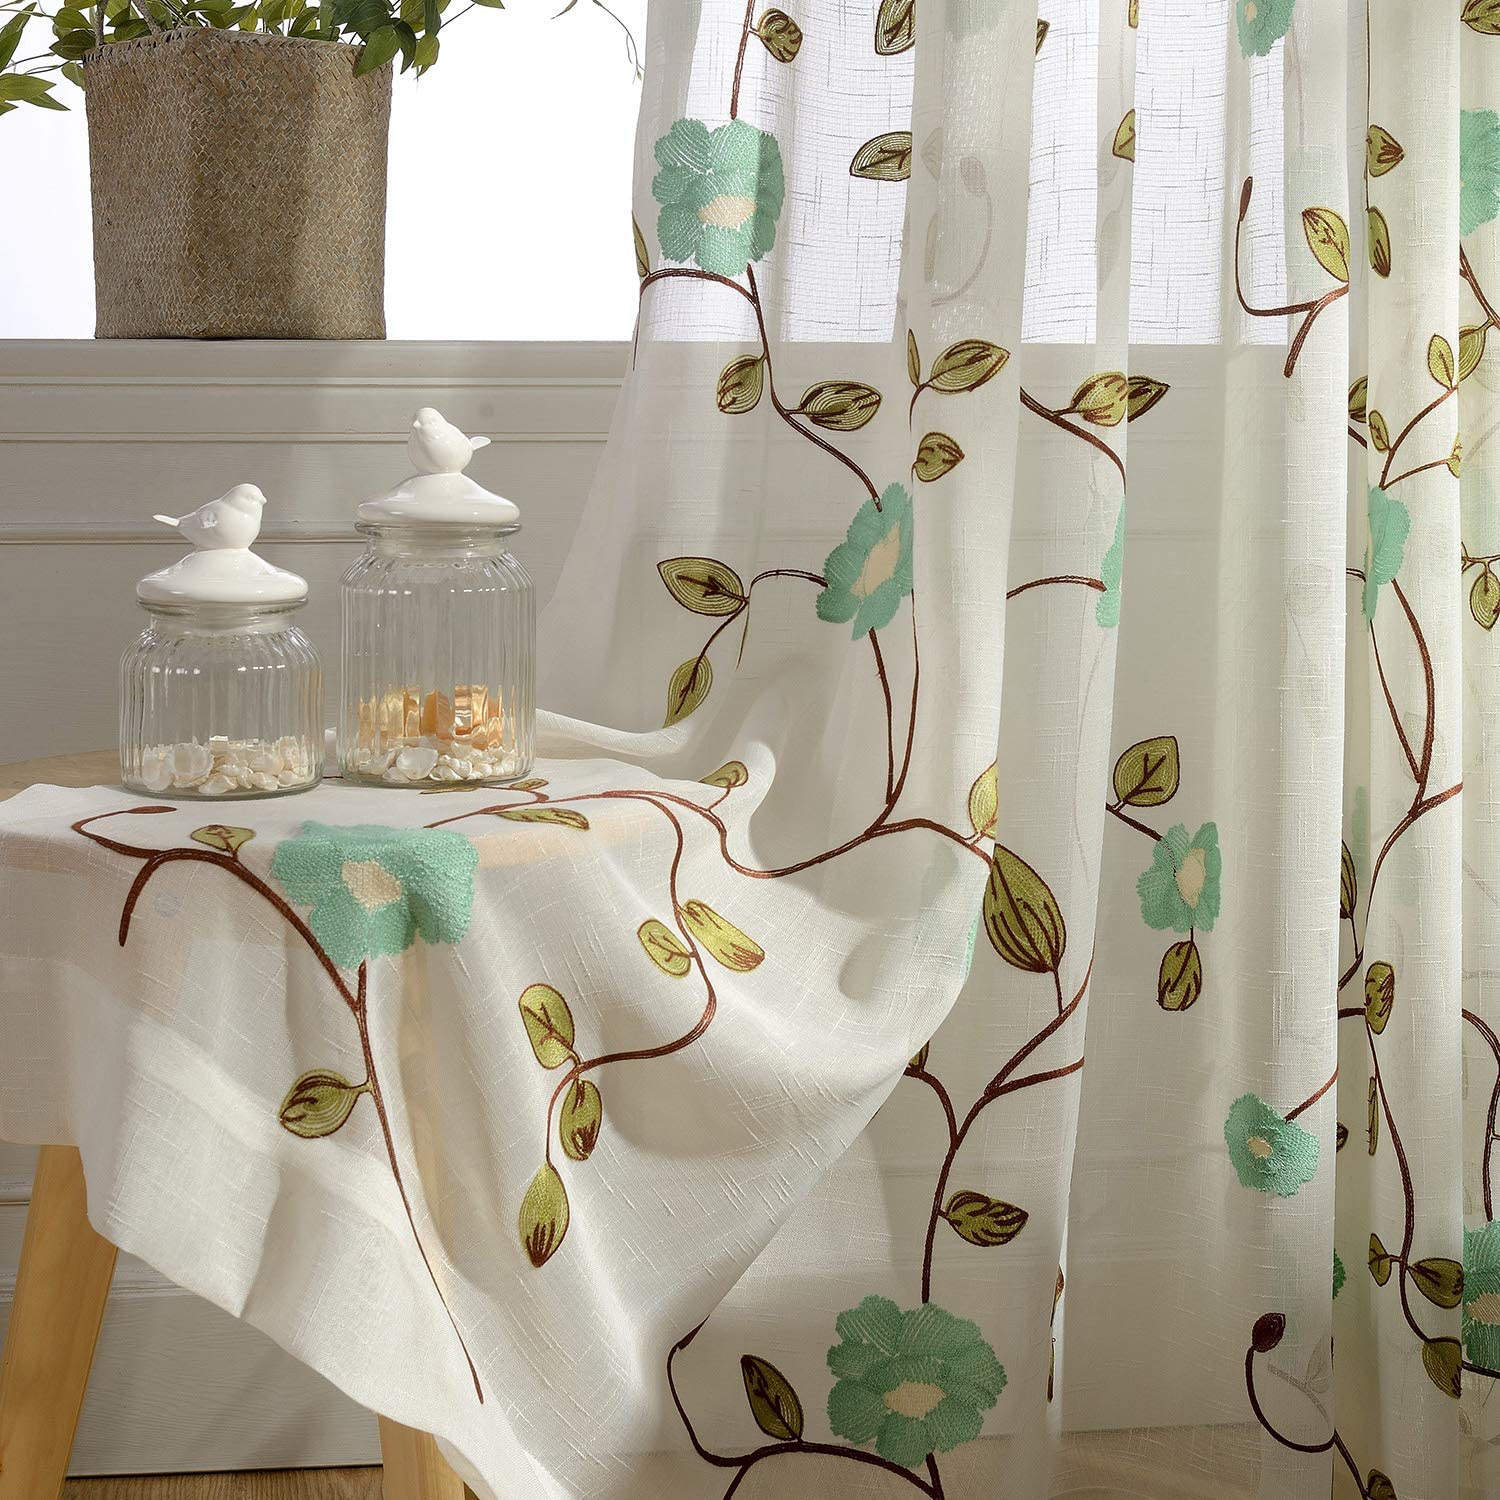 VOGOL Sheer Curtains 96 Inches Long, Blue Floral Embroidered Semi Sheer Rod Pocket Curtains for Living Room/Bedroom, W52 X L96, 2 Pieces